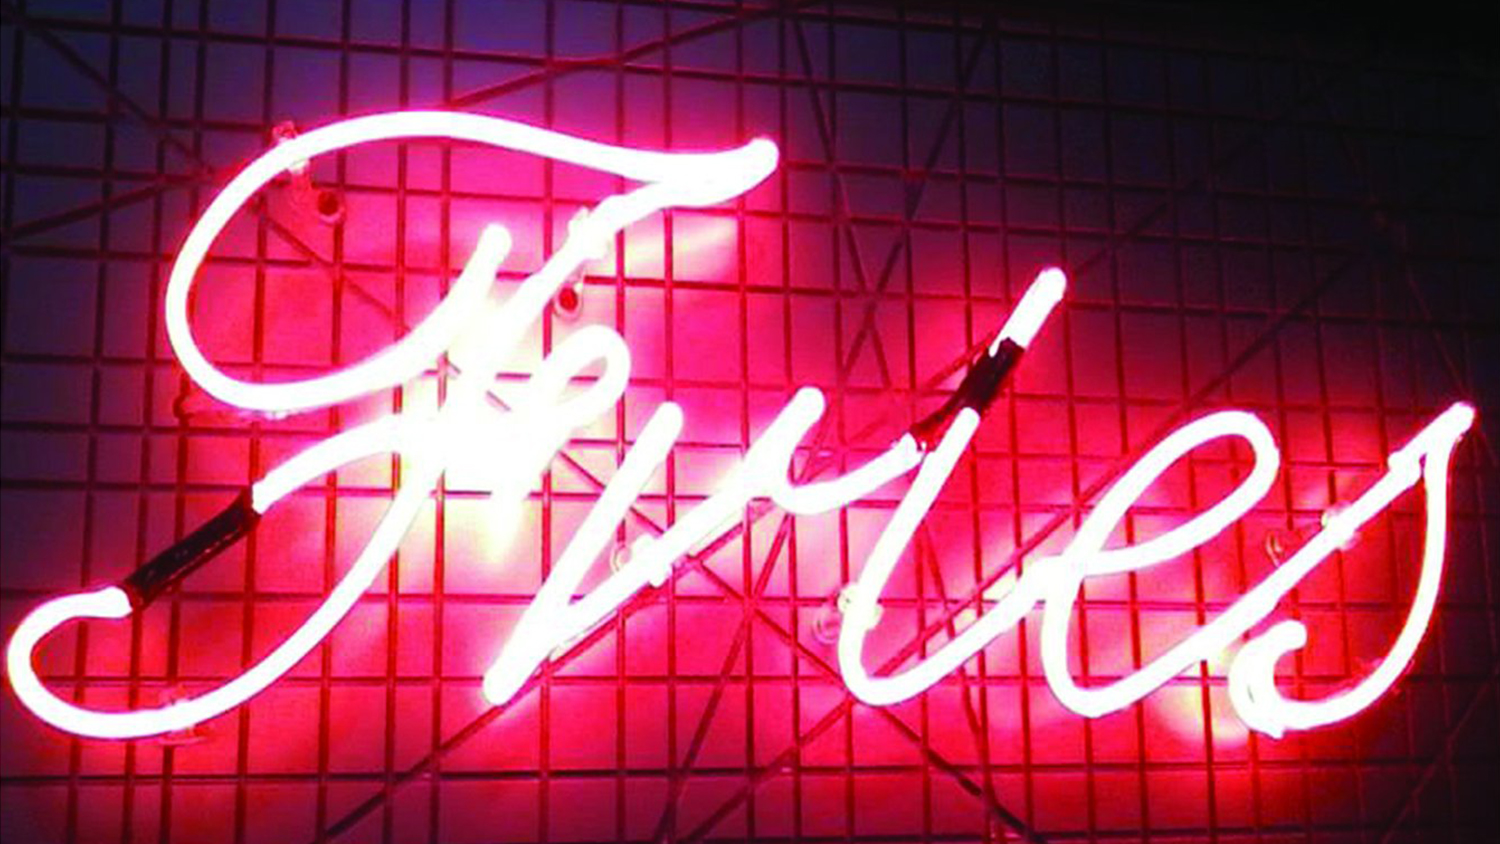 NEON / LED SIGNS